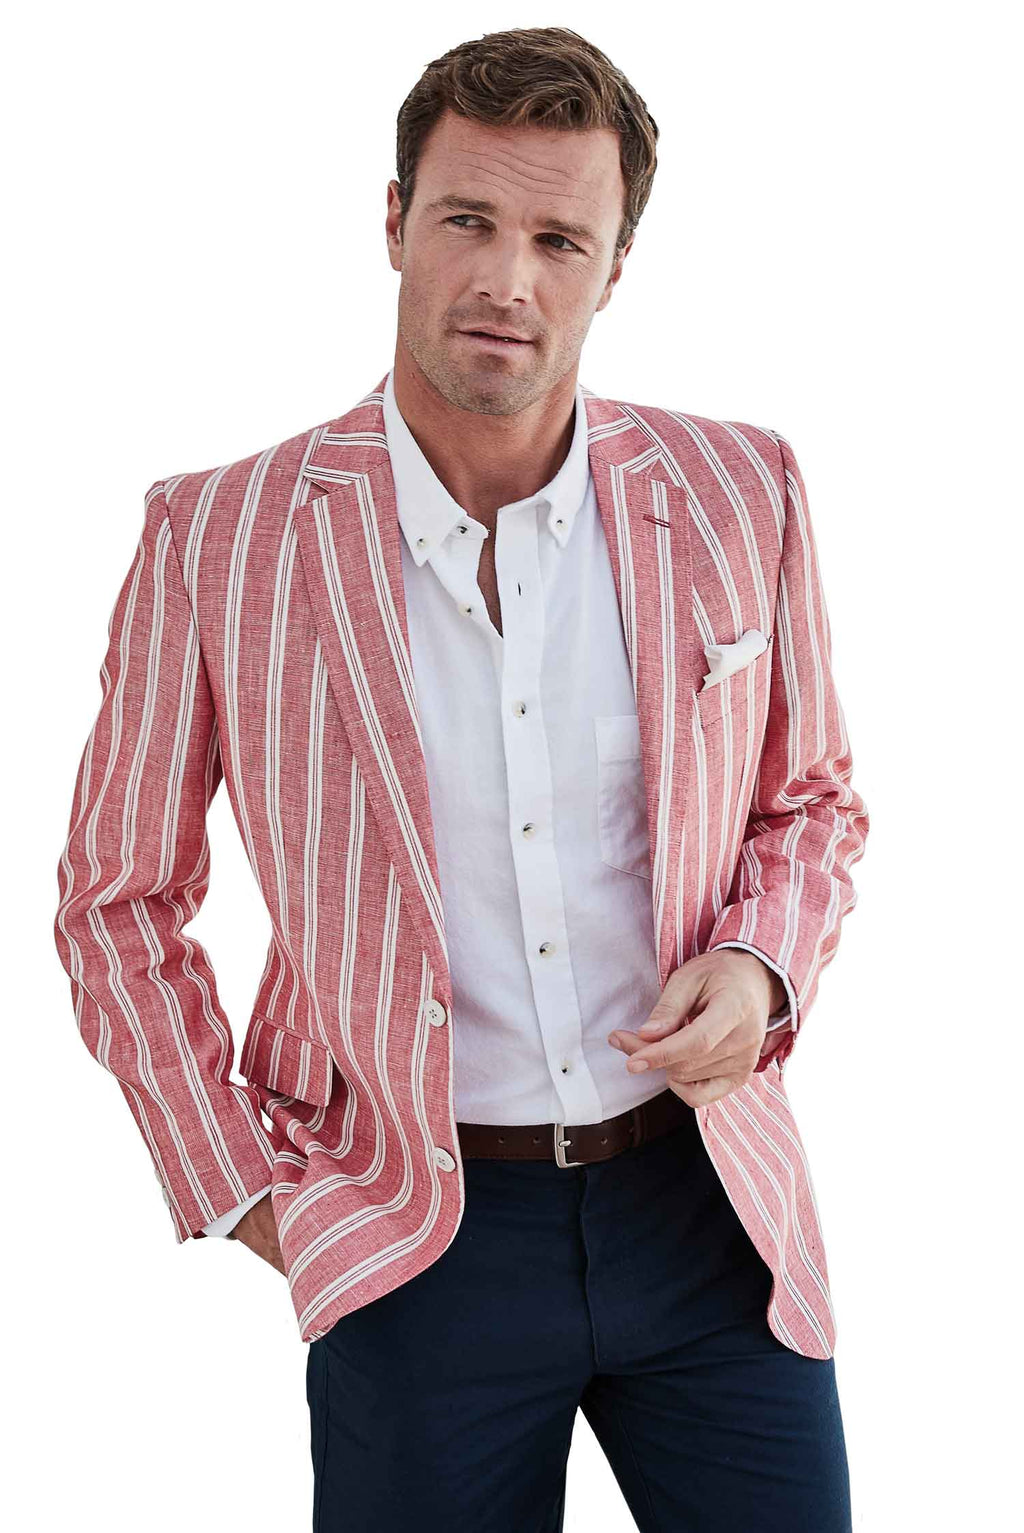 Awdry Men's Jacket - coral and white stripe